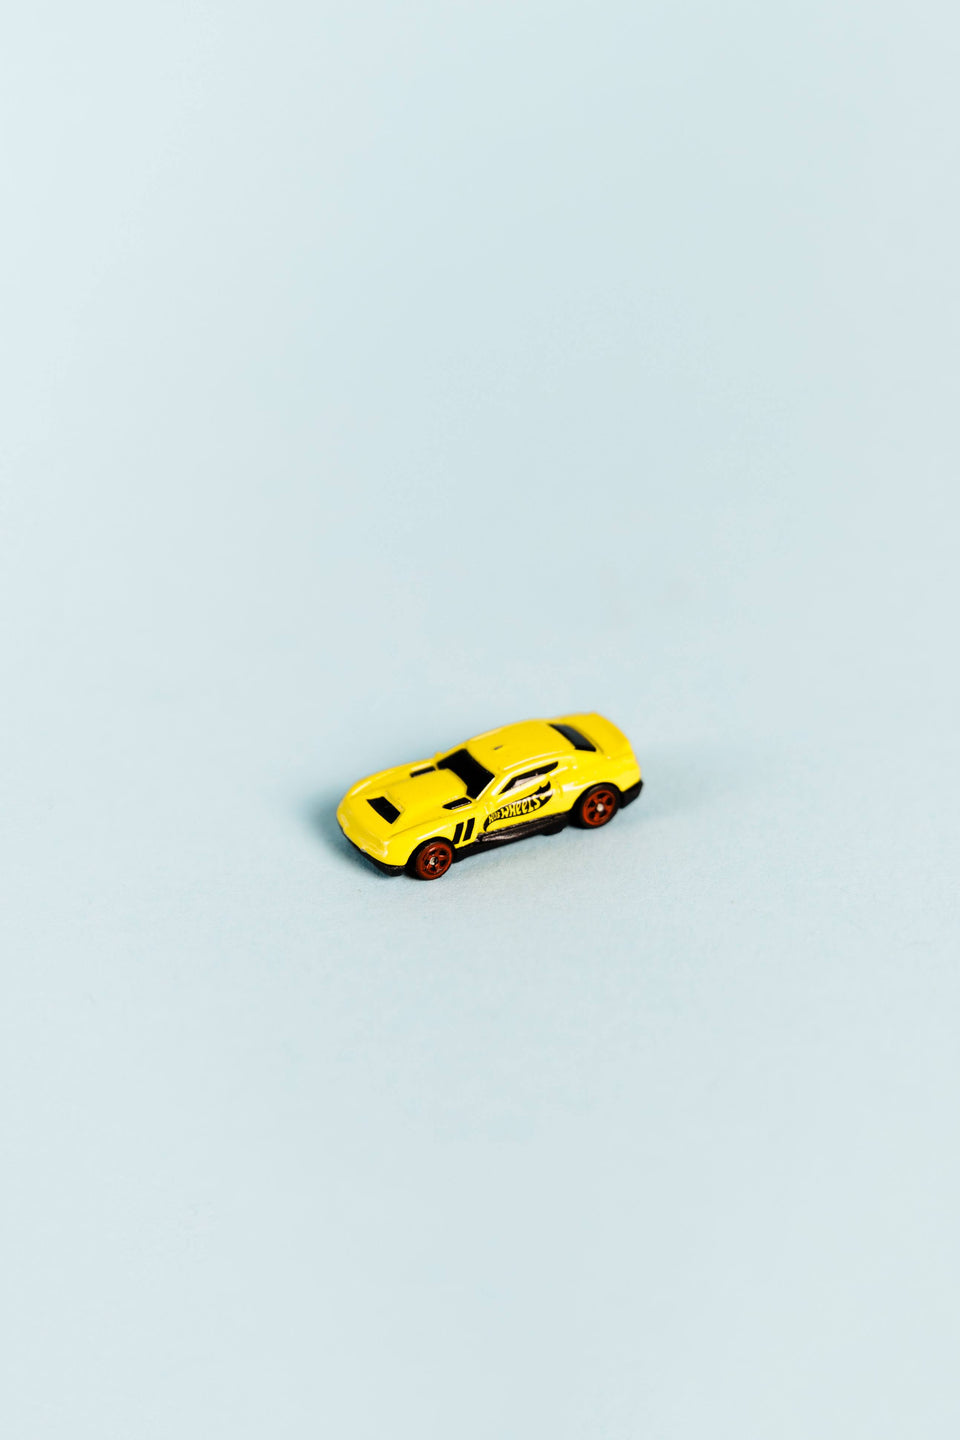 World's Smallest: Hot Wheels Series 4